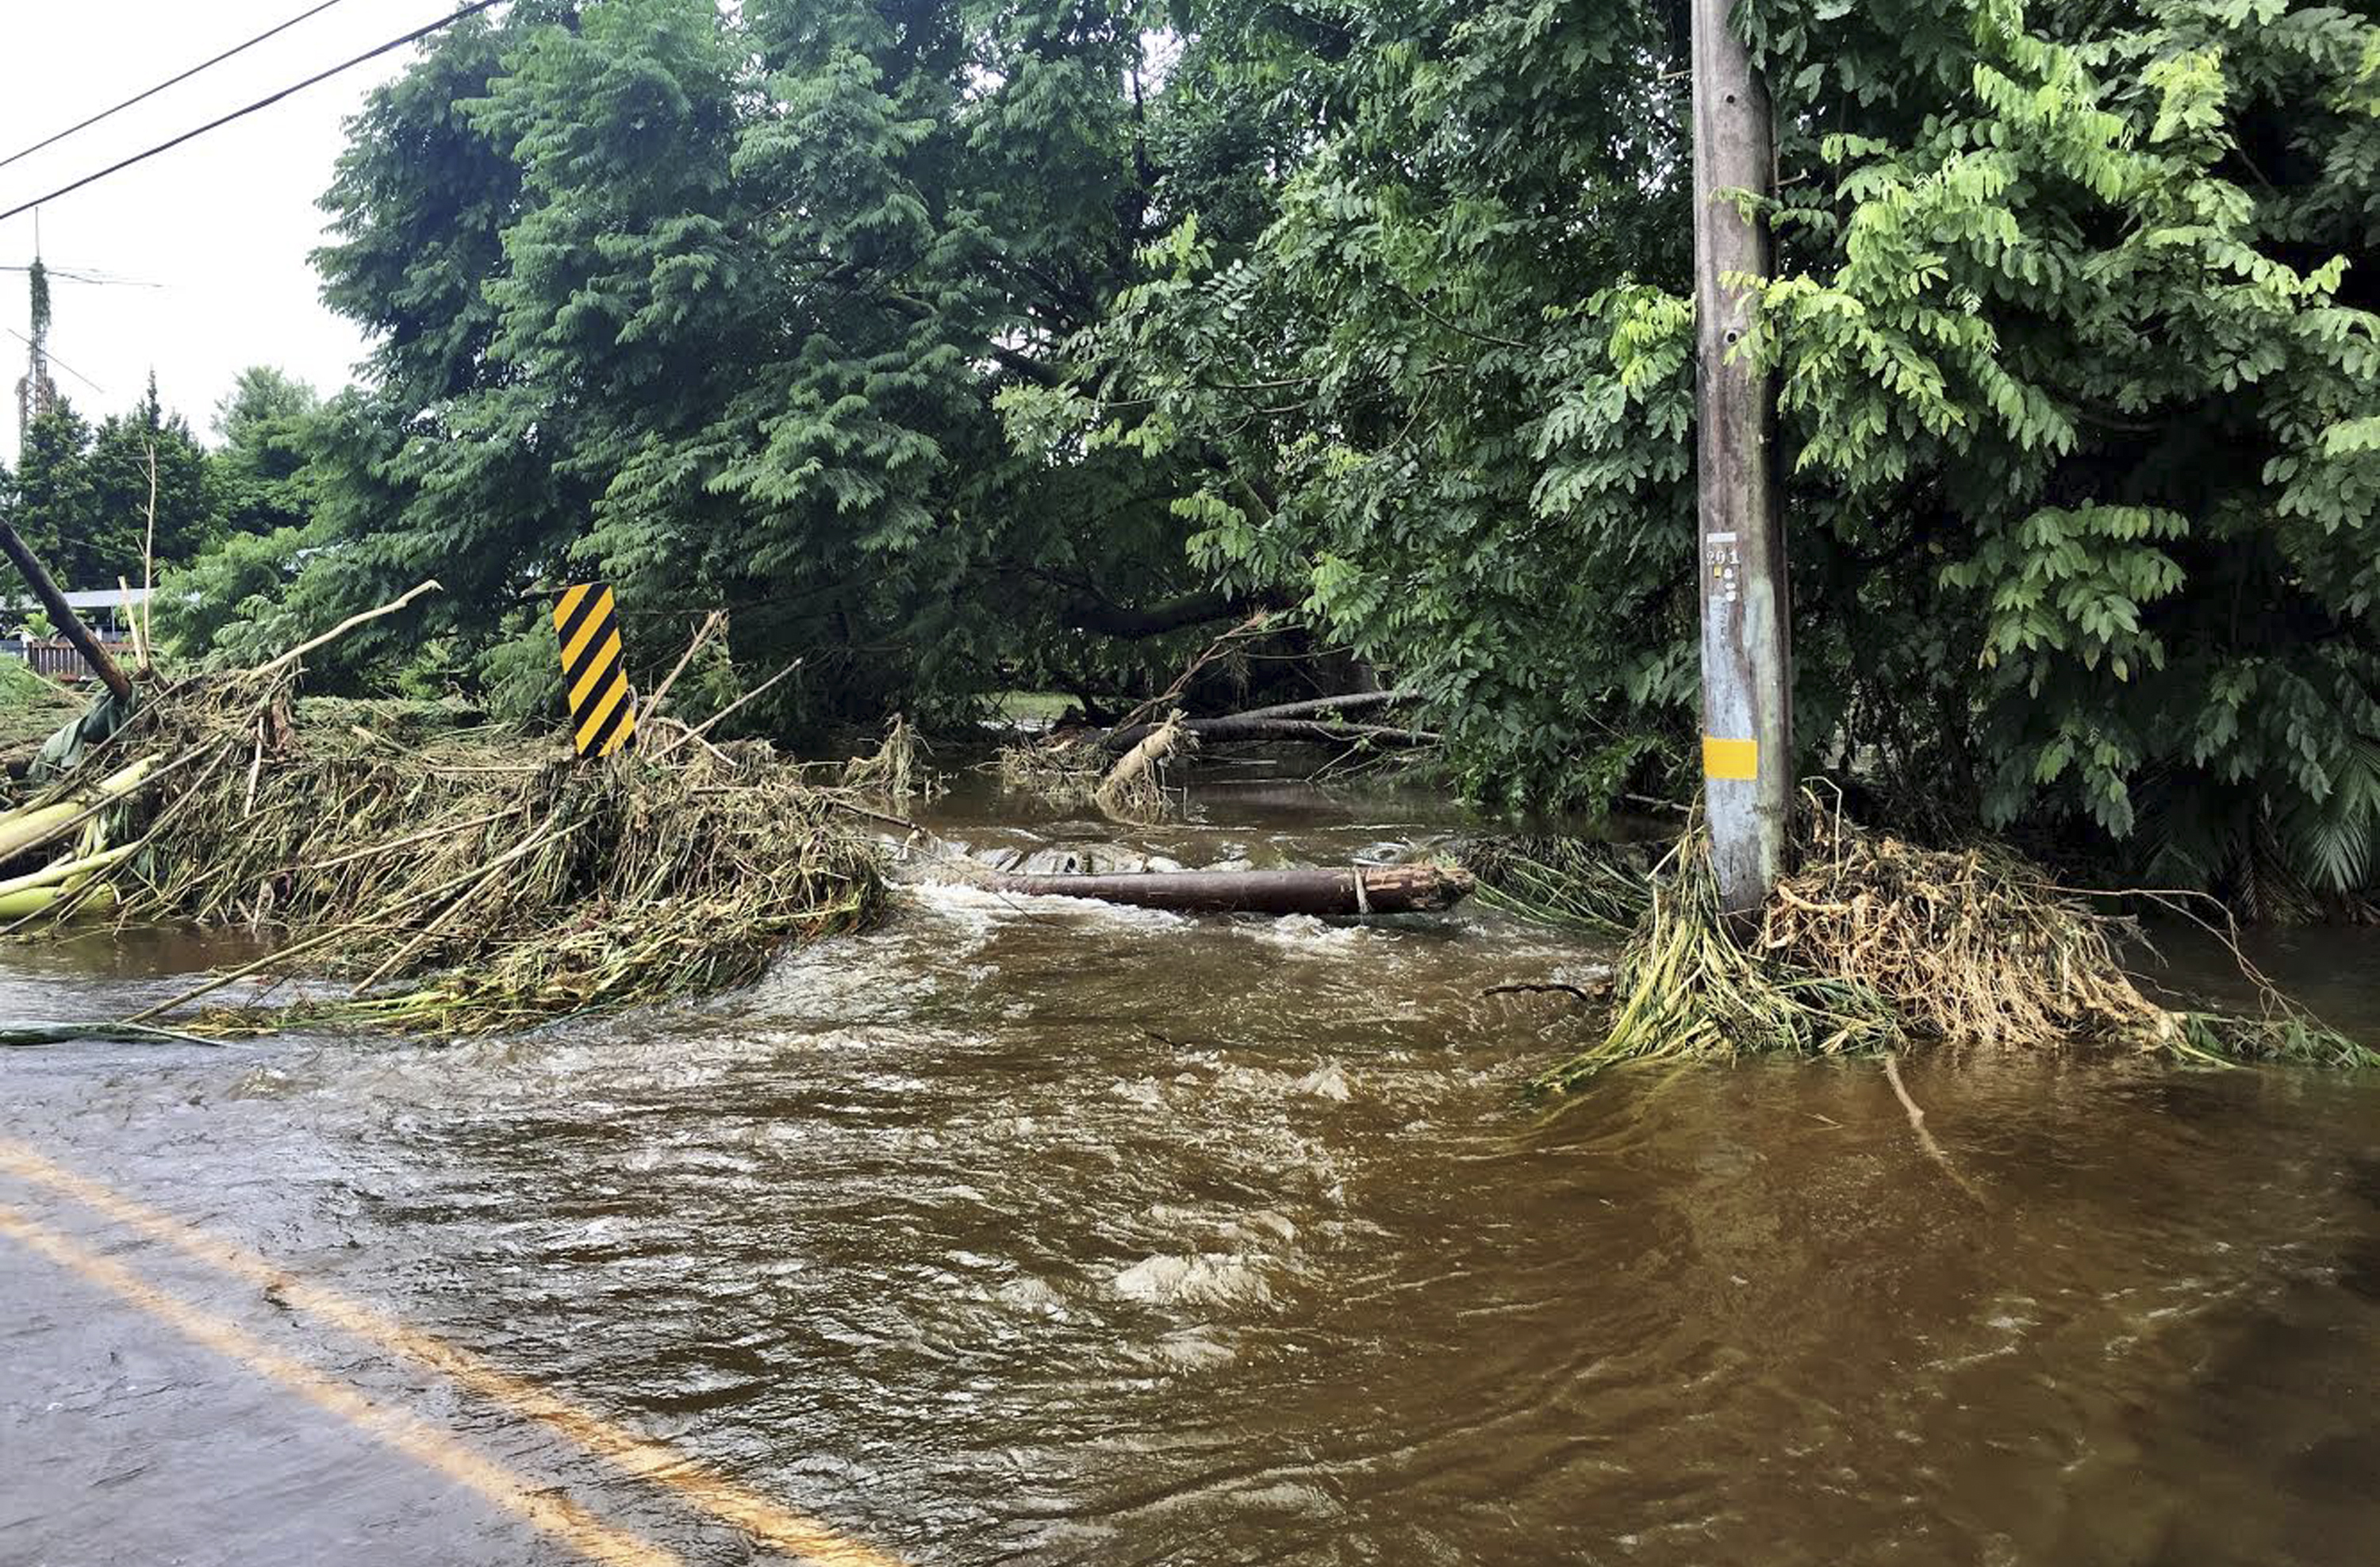 In this photo provided by Jessica Henricks, is flooding and damage from Hurricane Lane Friday, Aug. 24, 2018, near Hilo, Hawaii. (Jessica Henricks via AP)